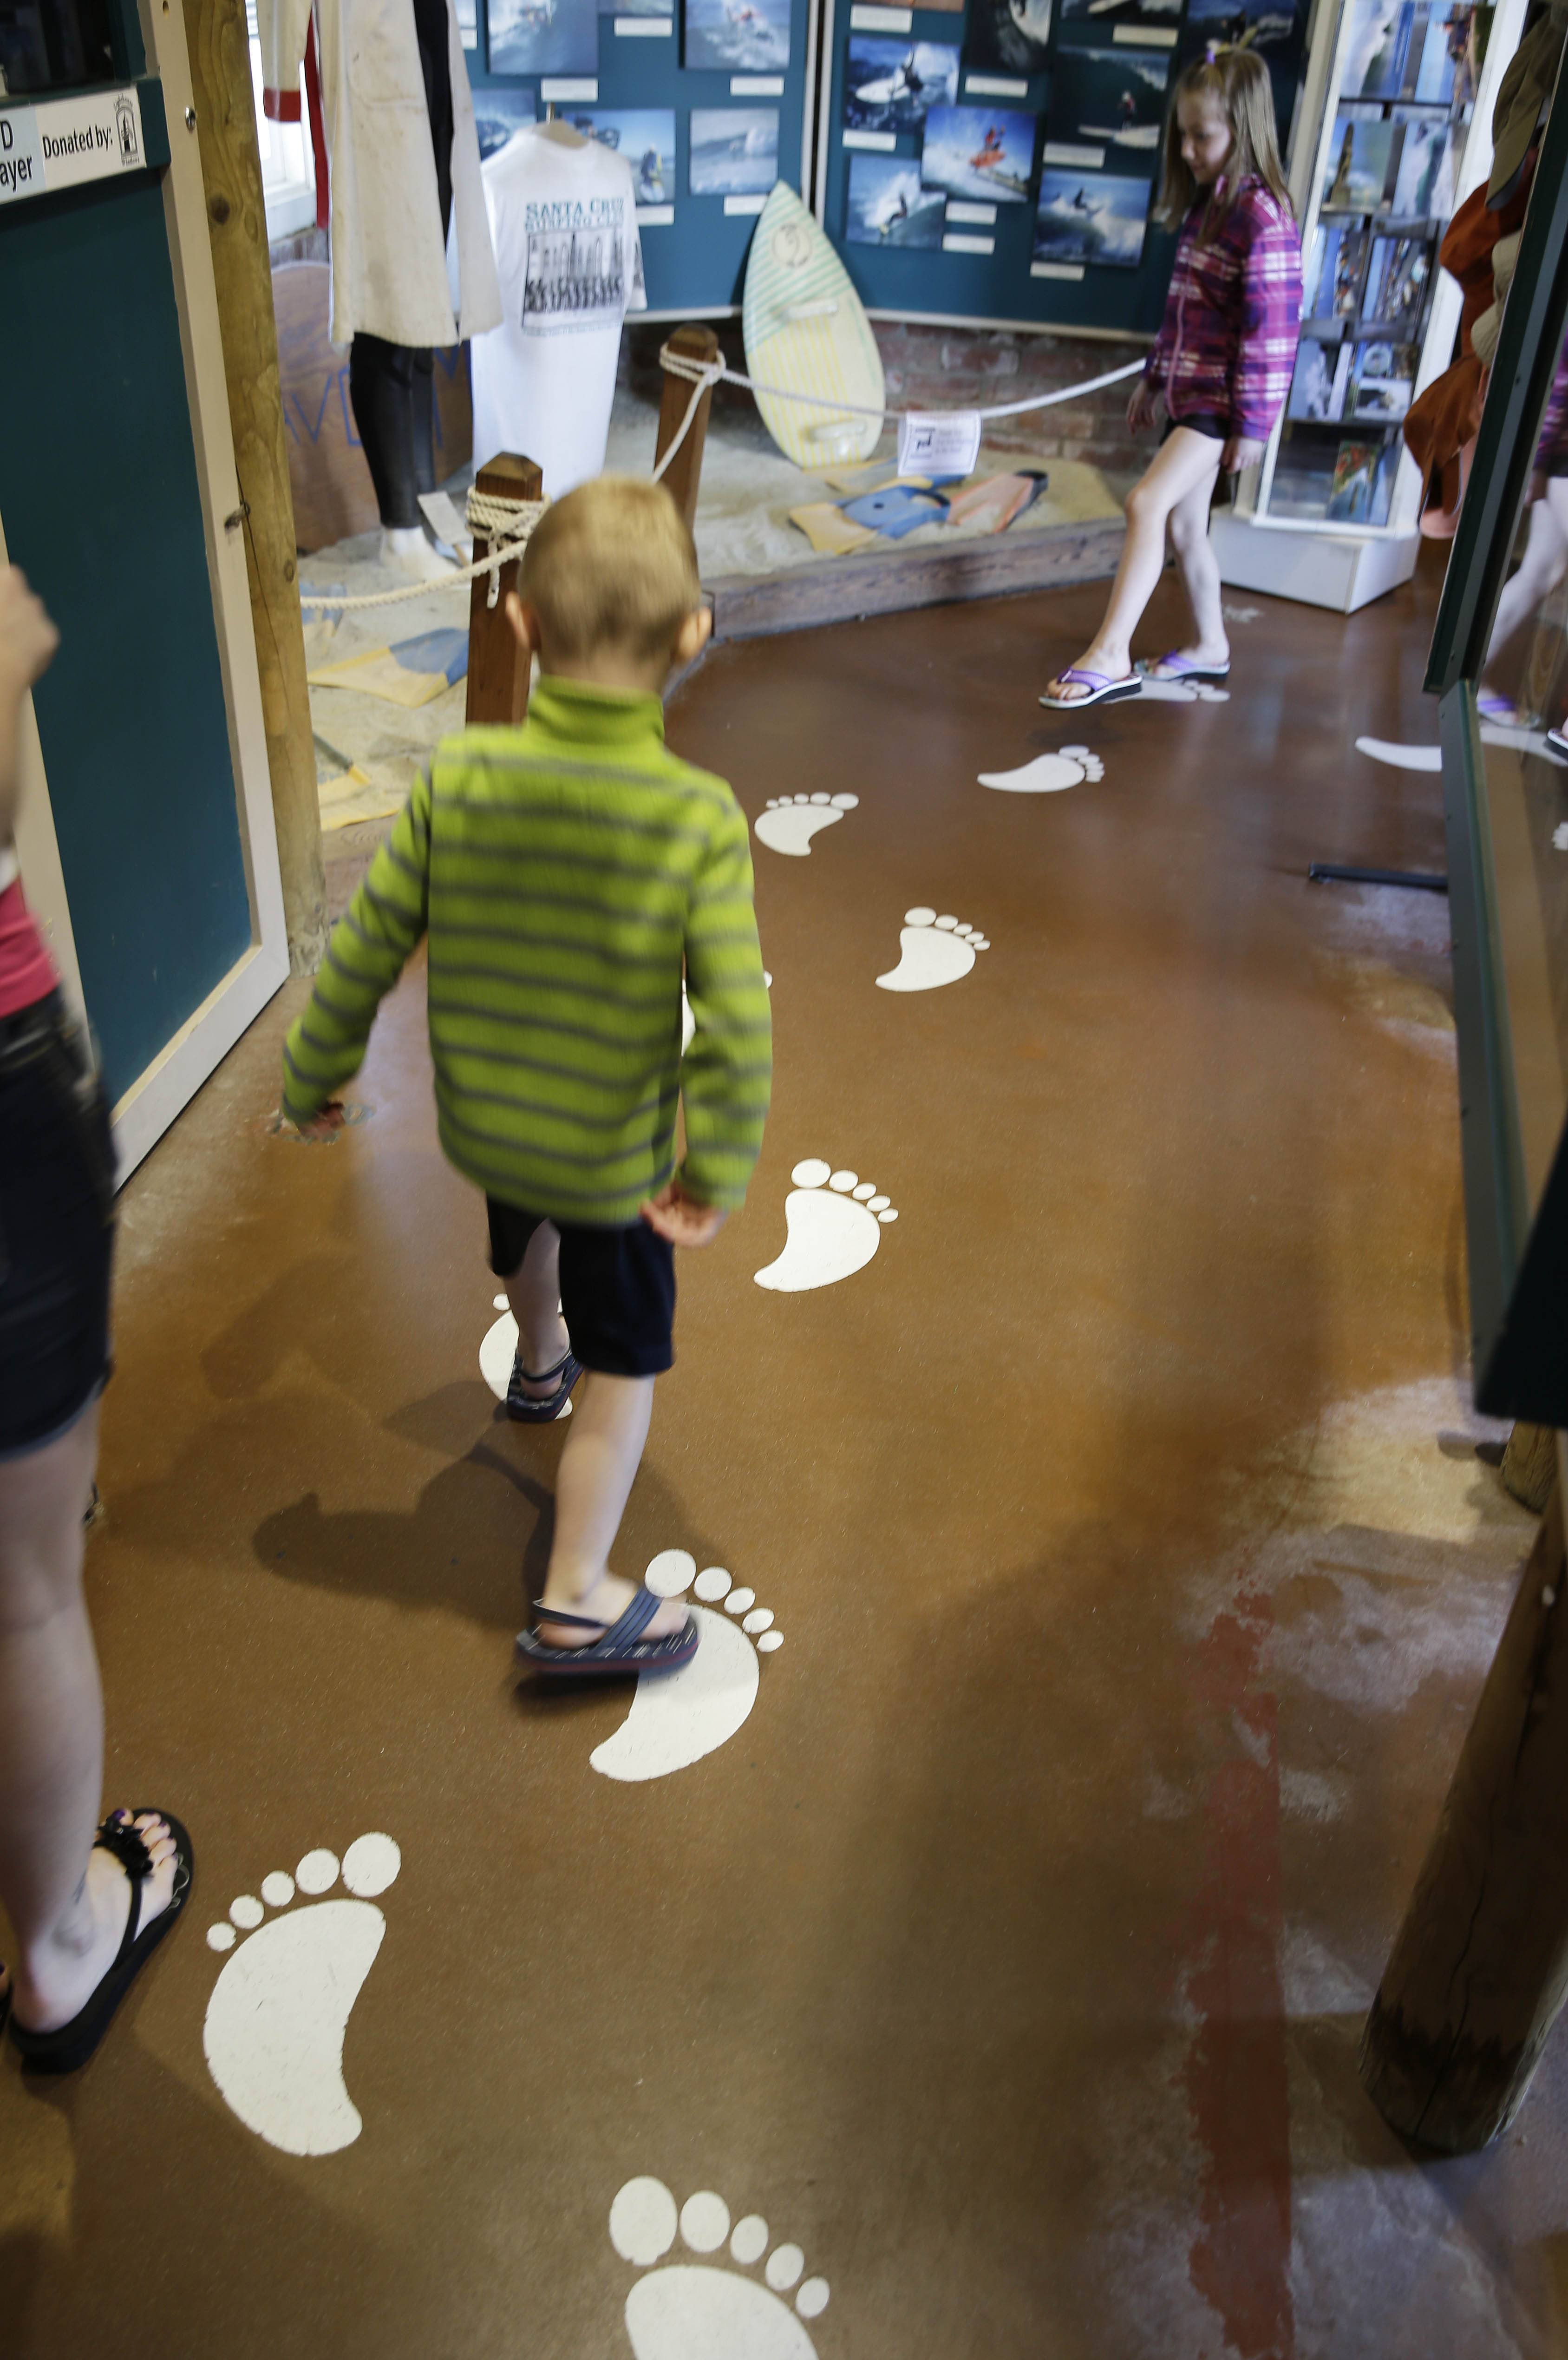 Children follow along painted footprints inside the Santa Cruz Surfing Museum in Santa Cruz, Calif.